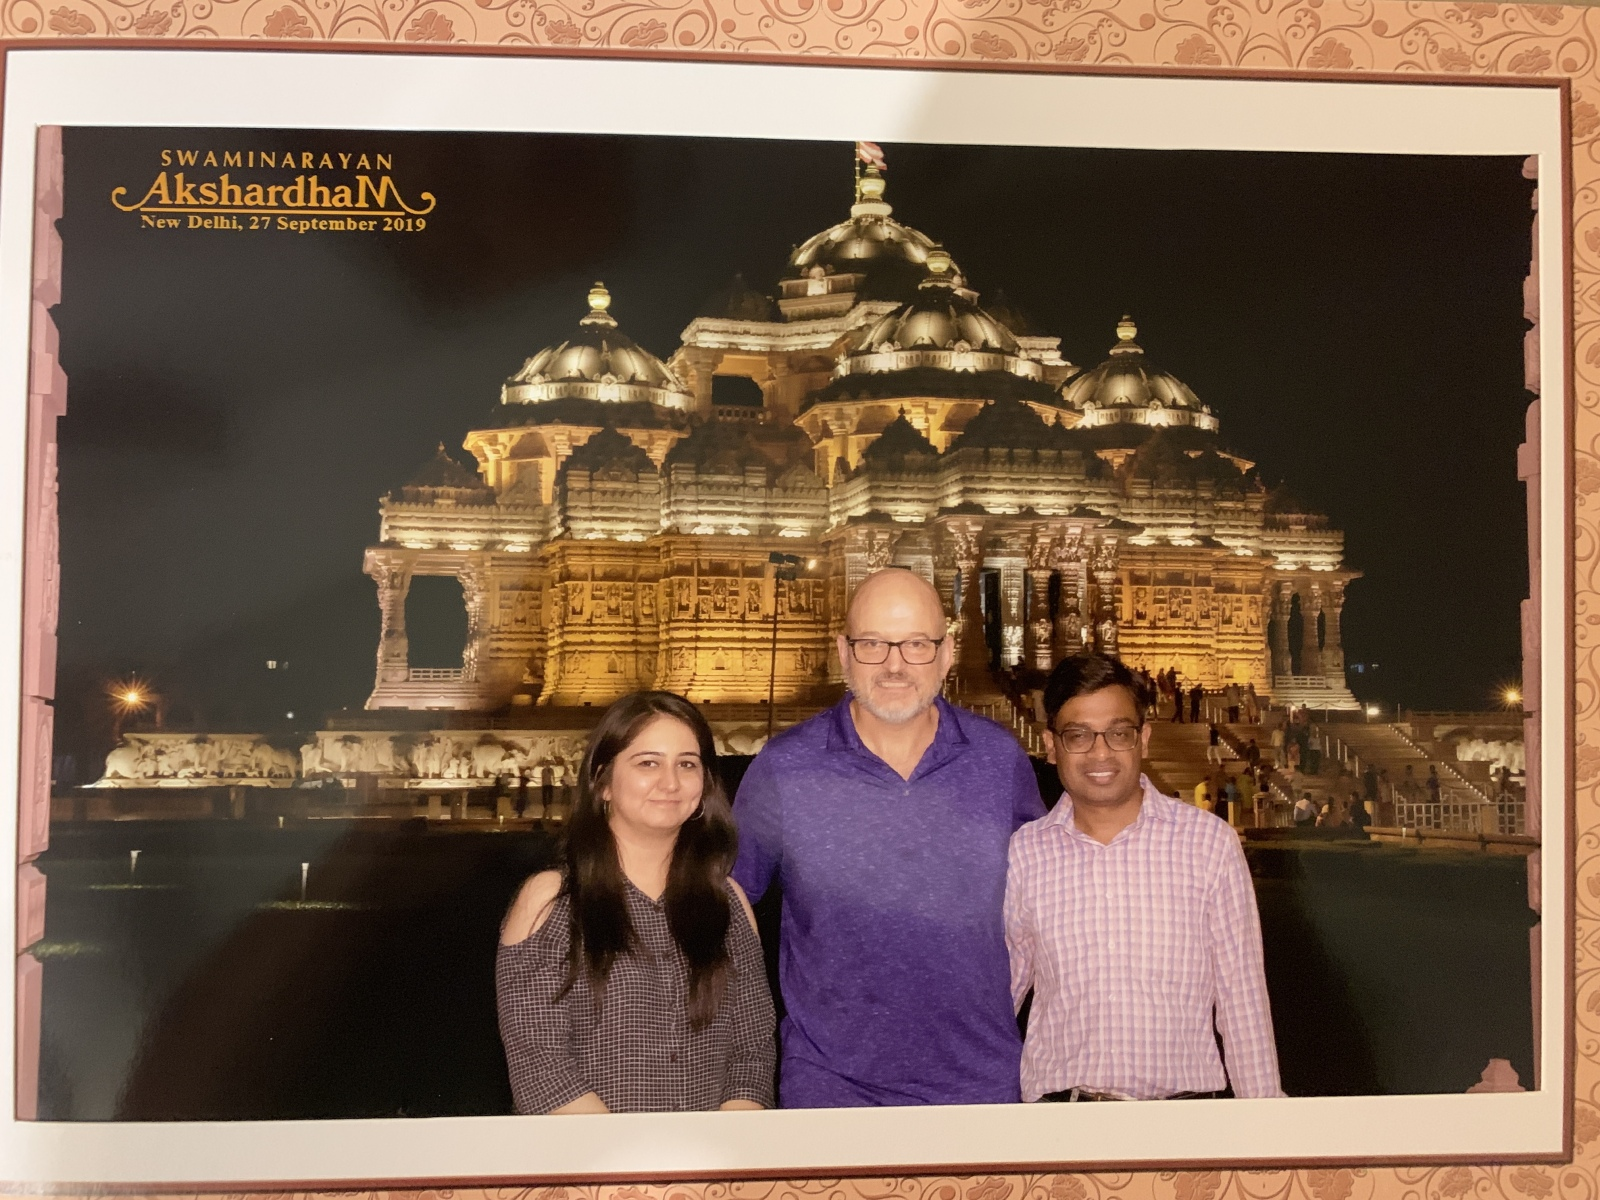 With Malti and Gaurav at Akshardham